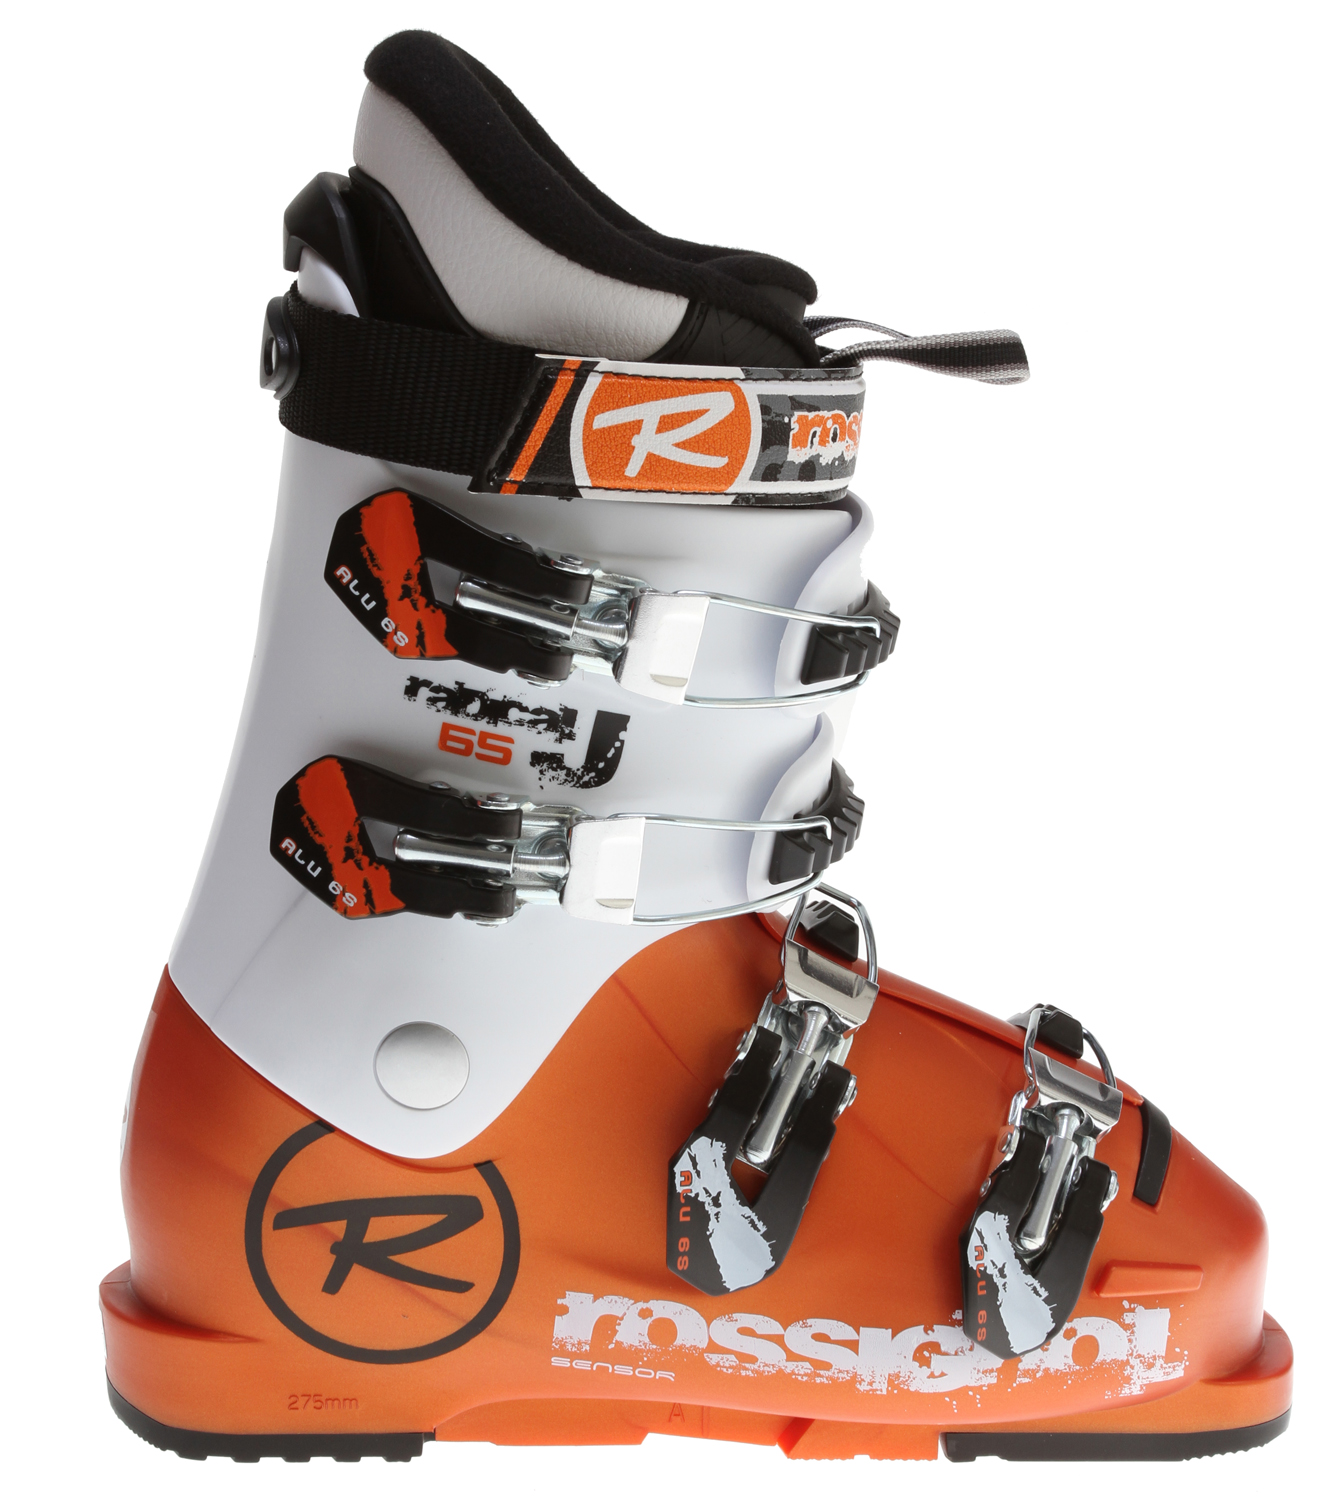 Ski The Radical Pro 65 is specifically for junior racers with an easy-to-flex, mechanically-hinged design. The progressive 65 flex makes this the ideal boot for J5 and J4 young racers to perfect their skills.Key Features of the Rossignol Radical Jr 65 Ski Boots: Flex index 65 Shell specification POLYURETHANE Bootboard PU Cuff specification POLYOLEFINE Liner - technology SPORT FIT Buckles - material 4 MICRO - 100 % ALUMINIUM Power strap 28mm over 22 - $99.95